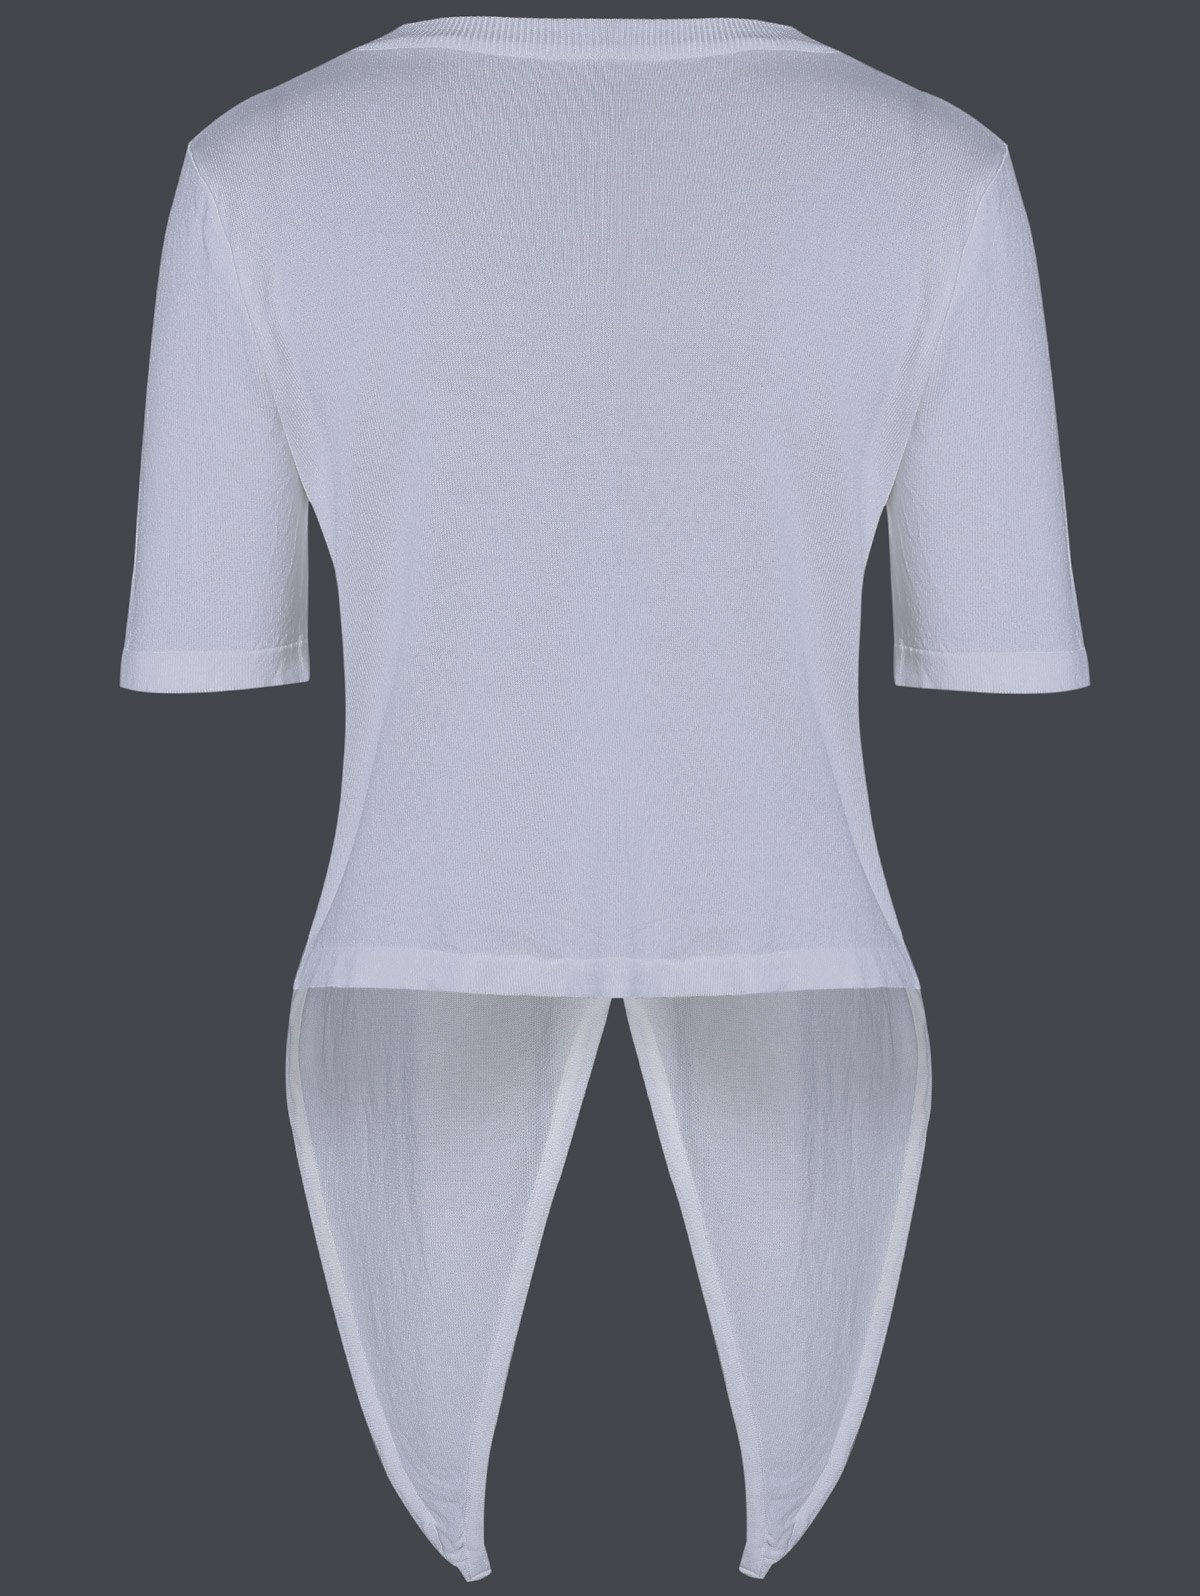 Casual Women's Scoop Neck Solid Color Tie Short Sleeves Knitwear - WHITE ONE SIZE(FIT SIZE XS TO M)